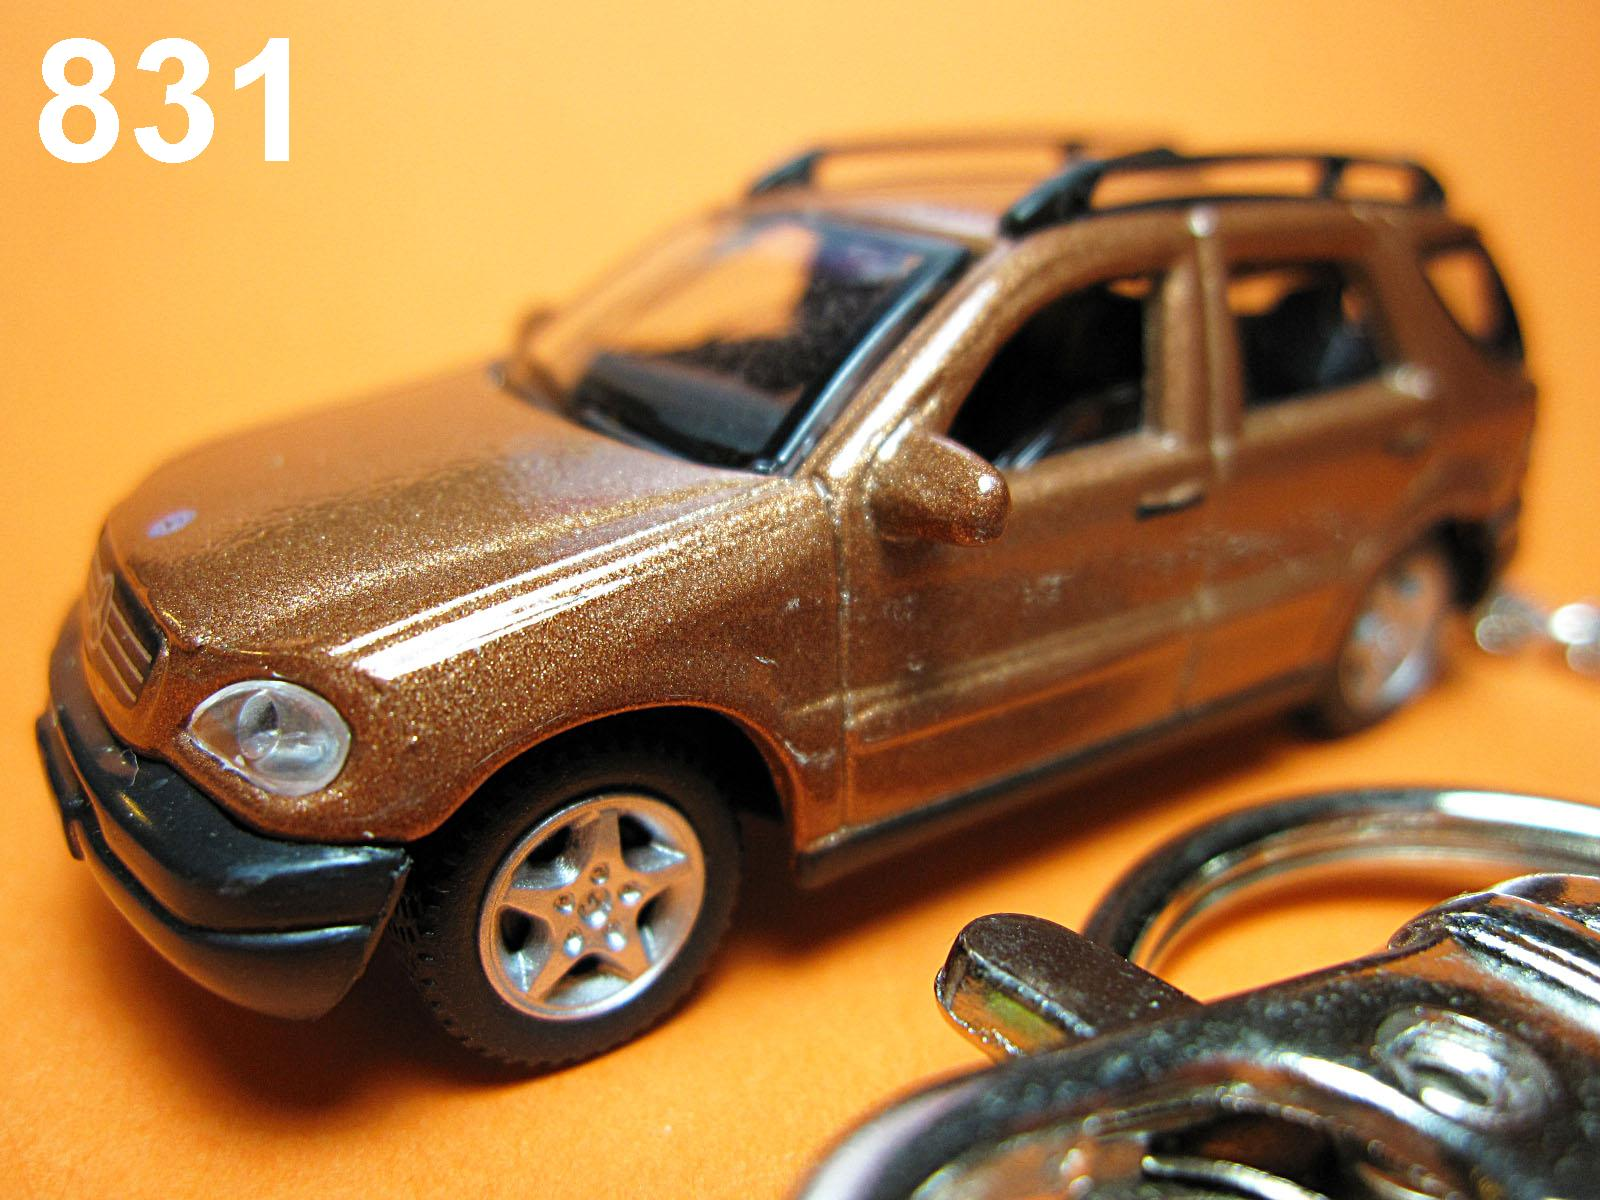 Mercedes-Benz ML (Metallic Brown) Die-cast Key Chain